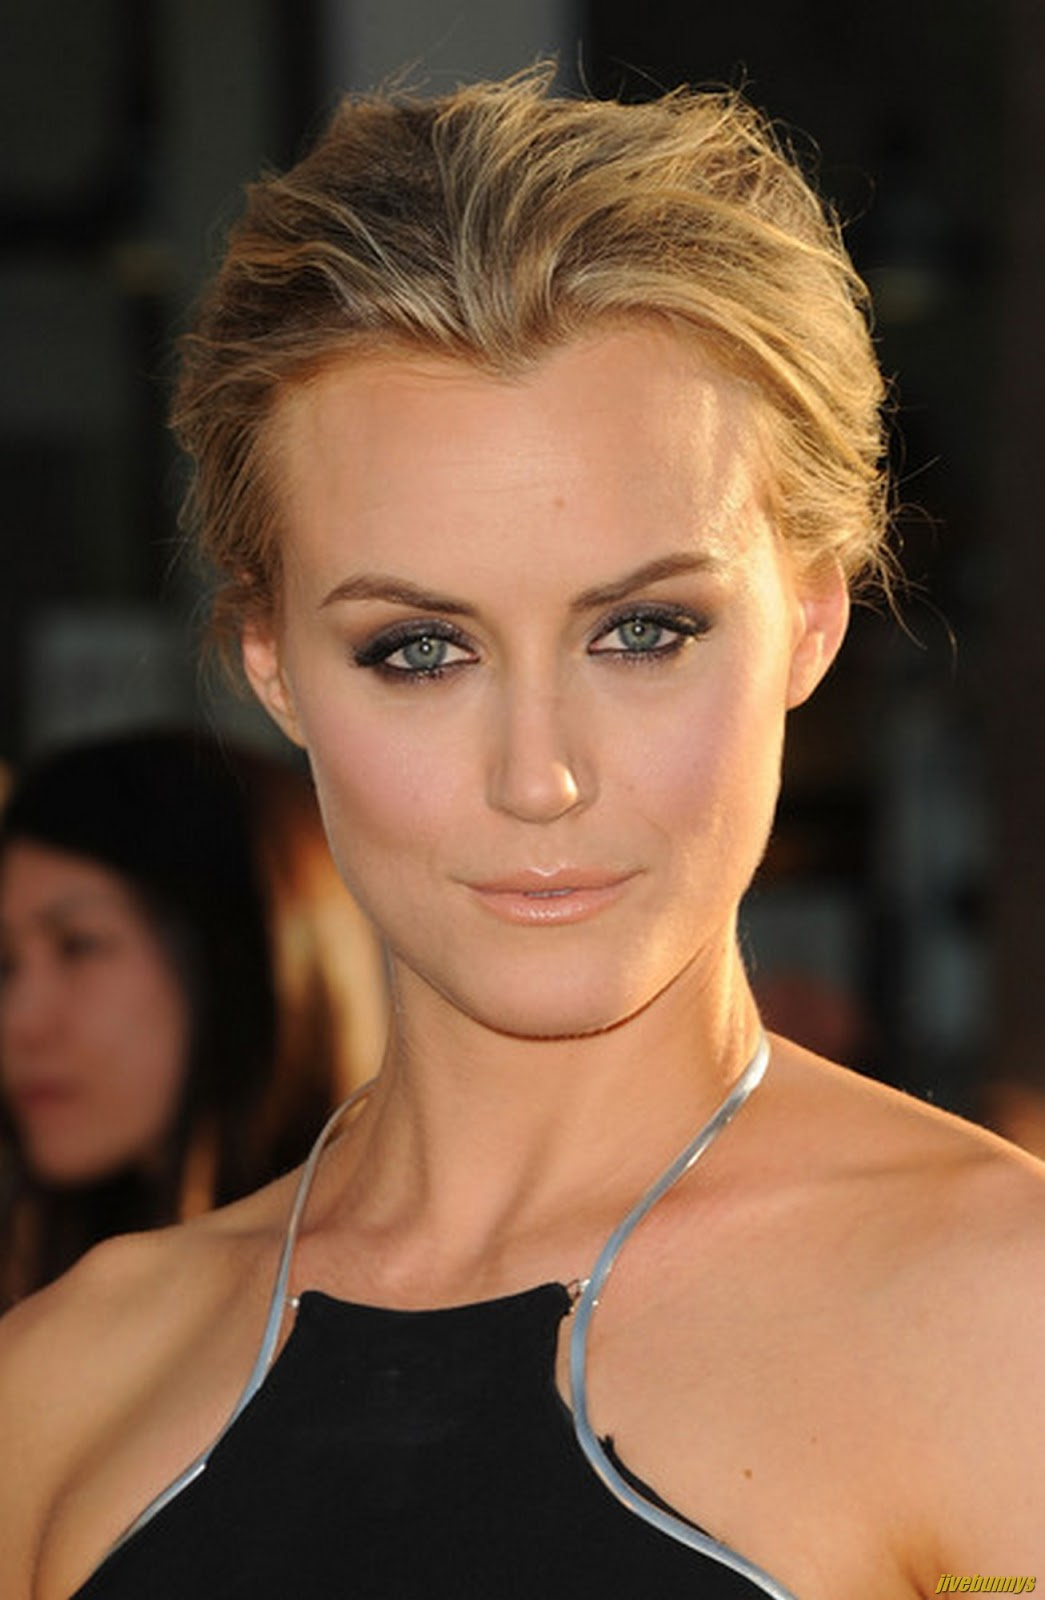 taylor schilling hot